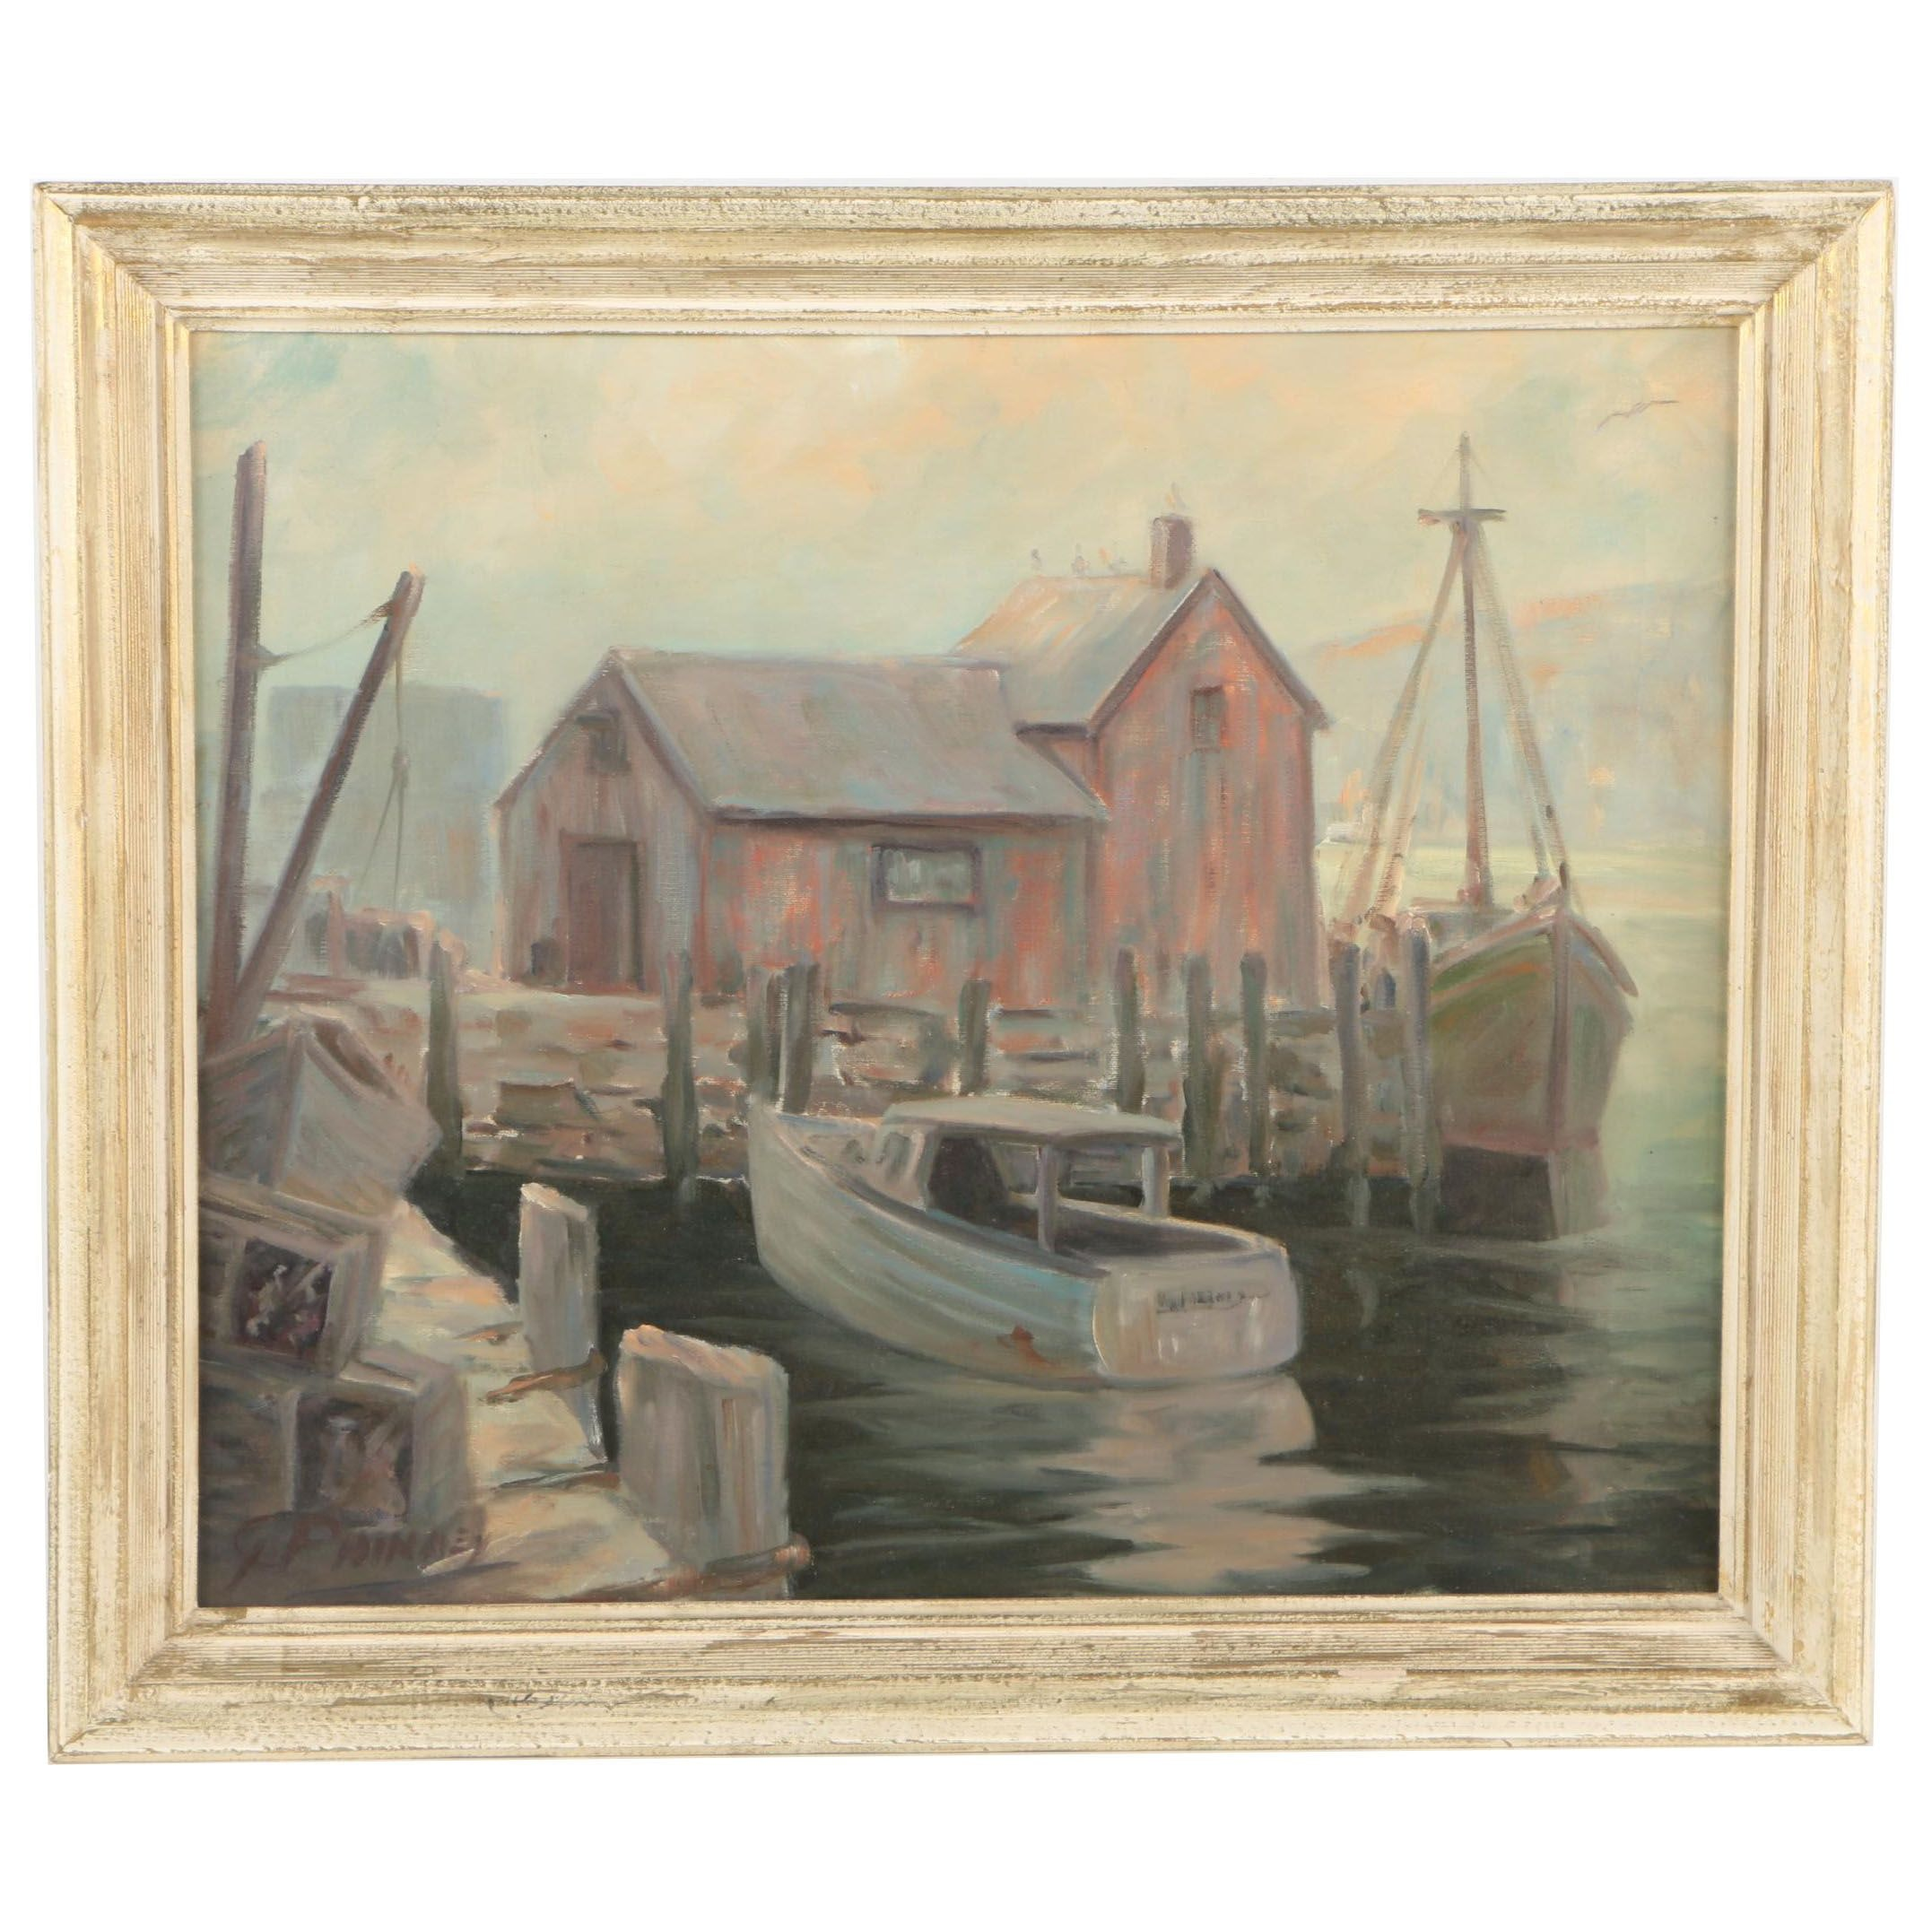 George Phinney Oil Painting on Canvas of a Harbor